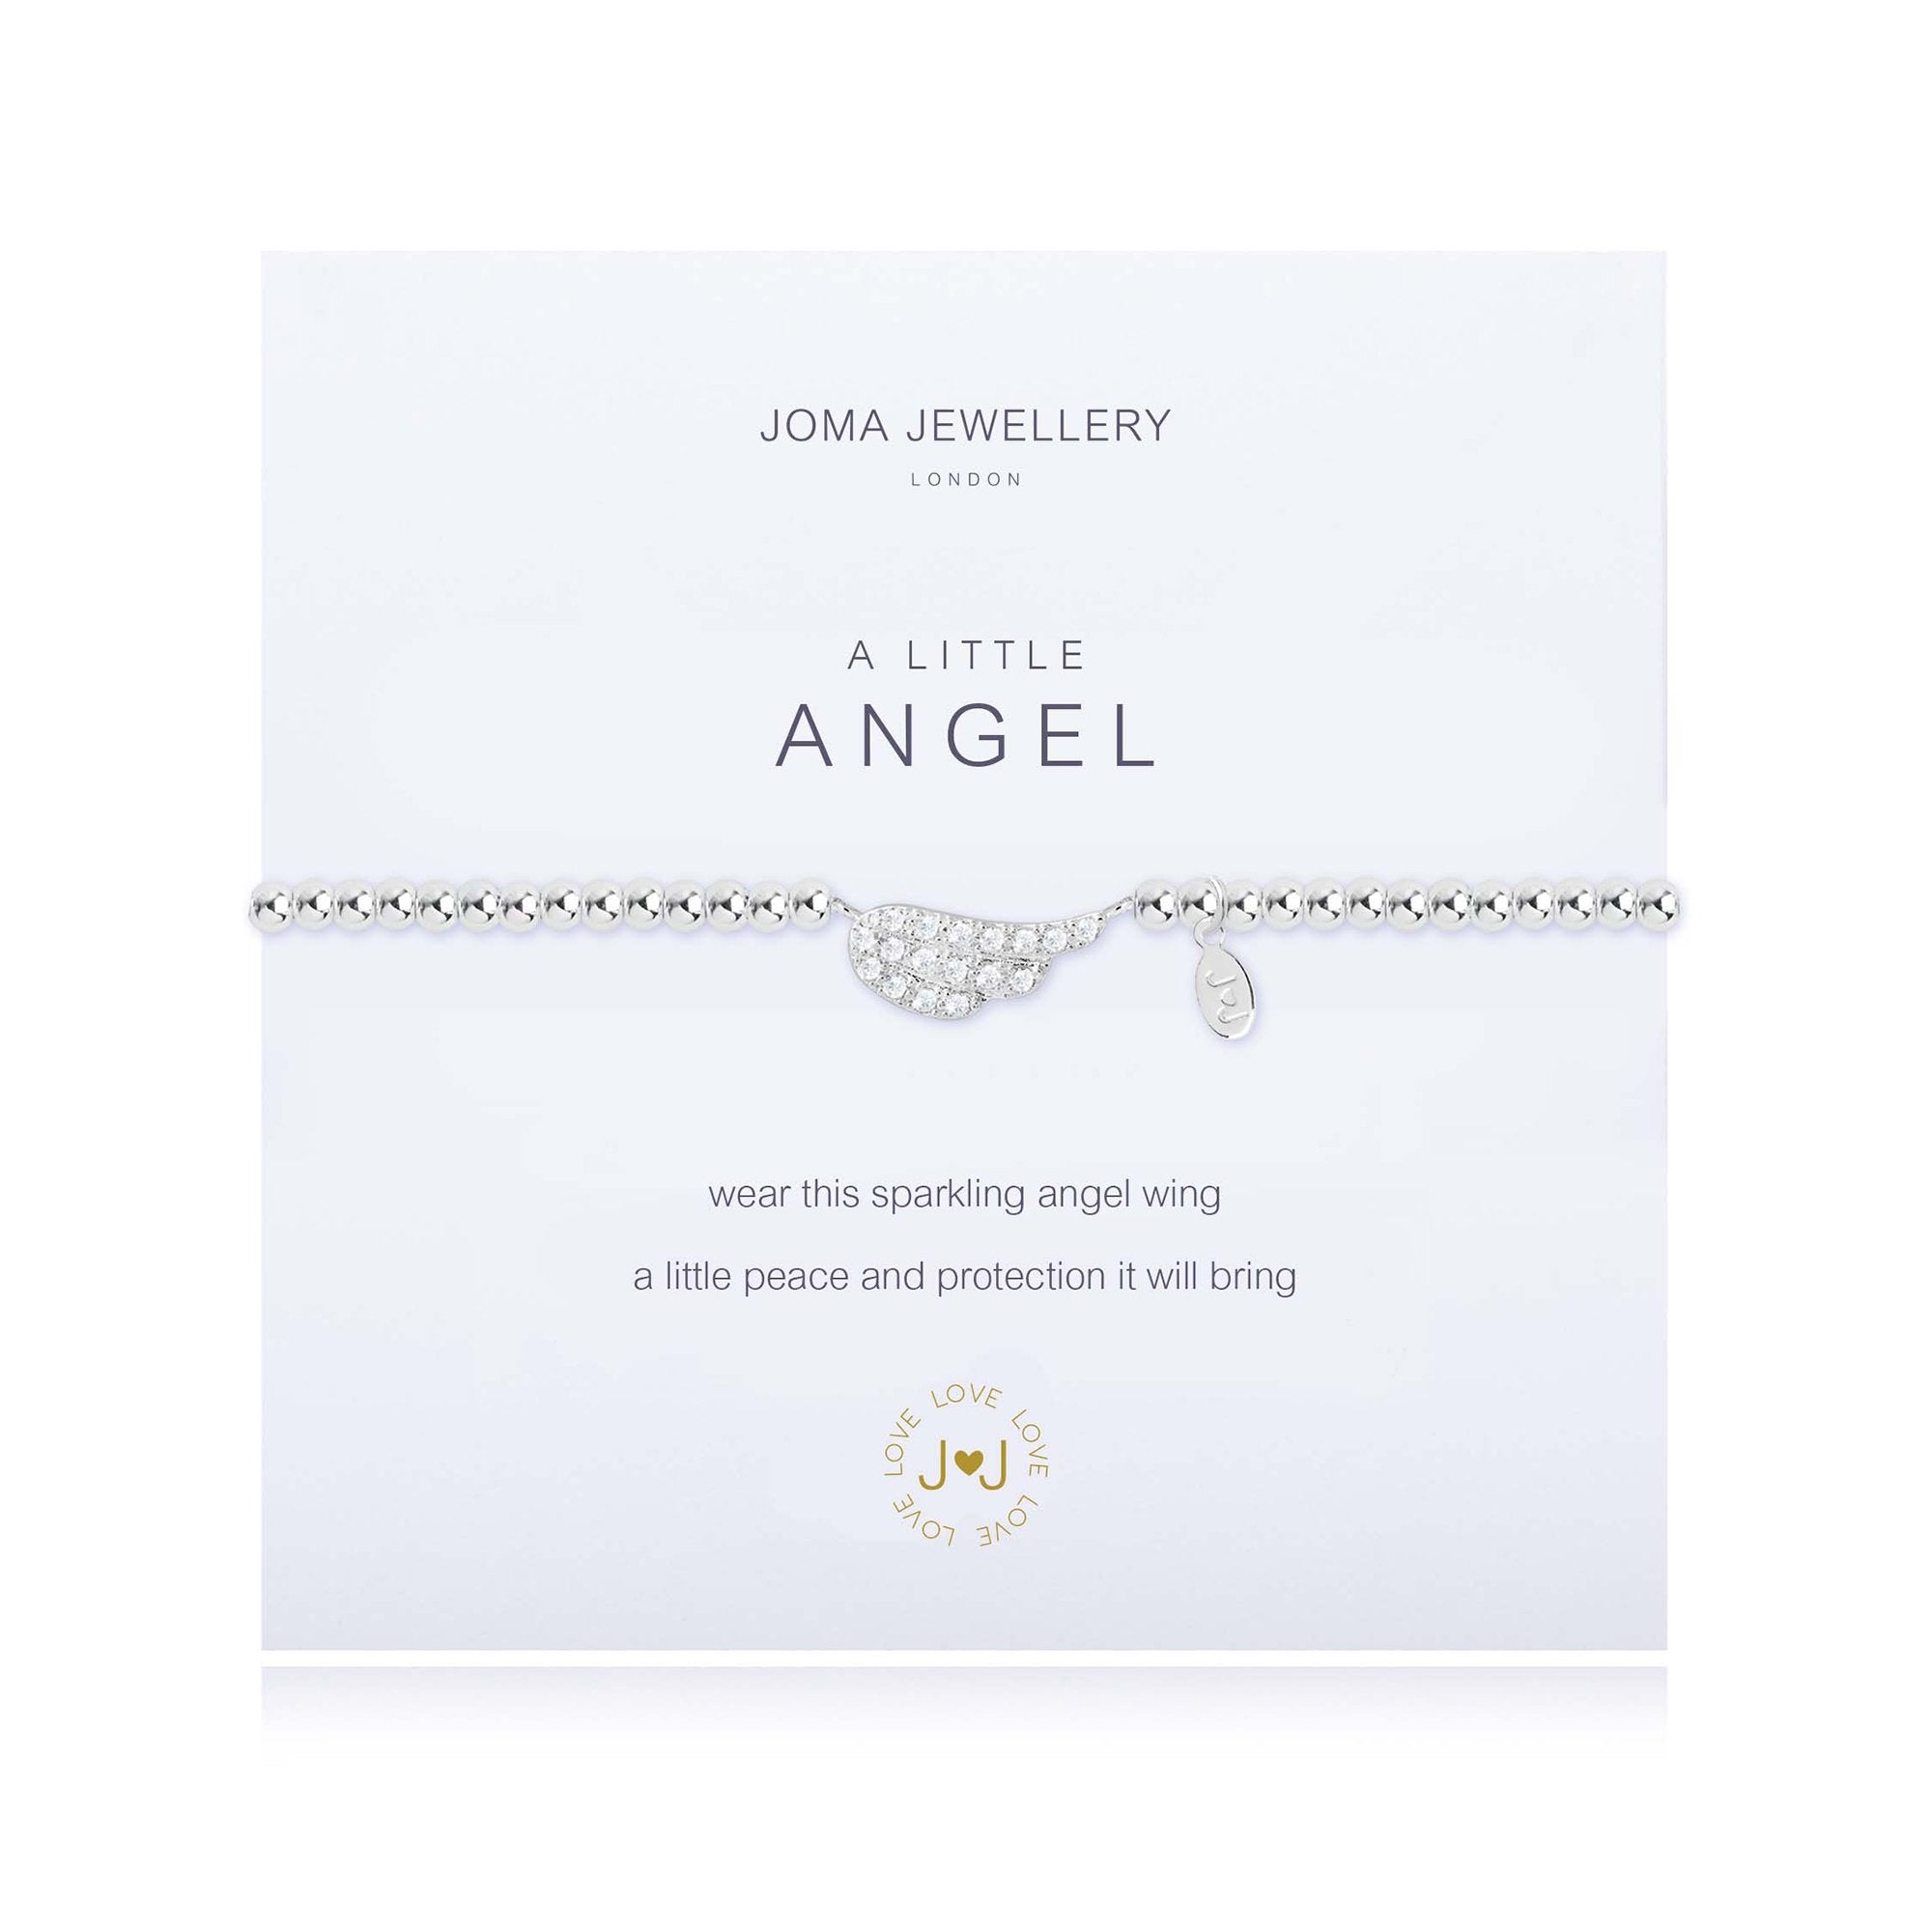 Joma Jewellery A LITTLE ANGEL BRACELET